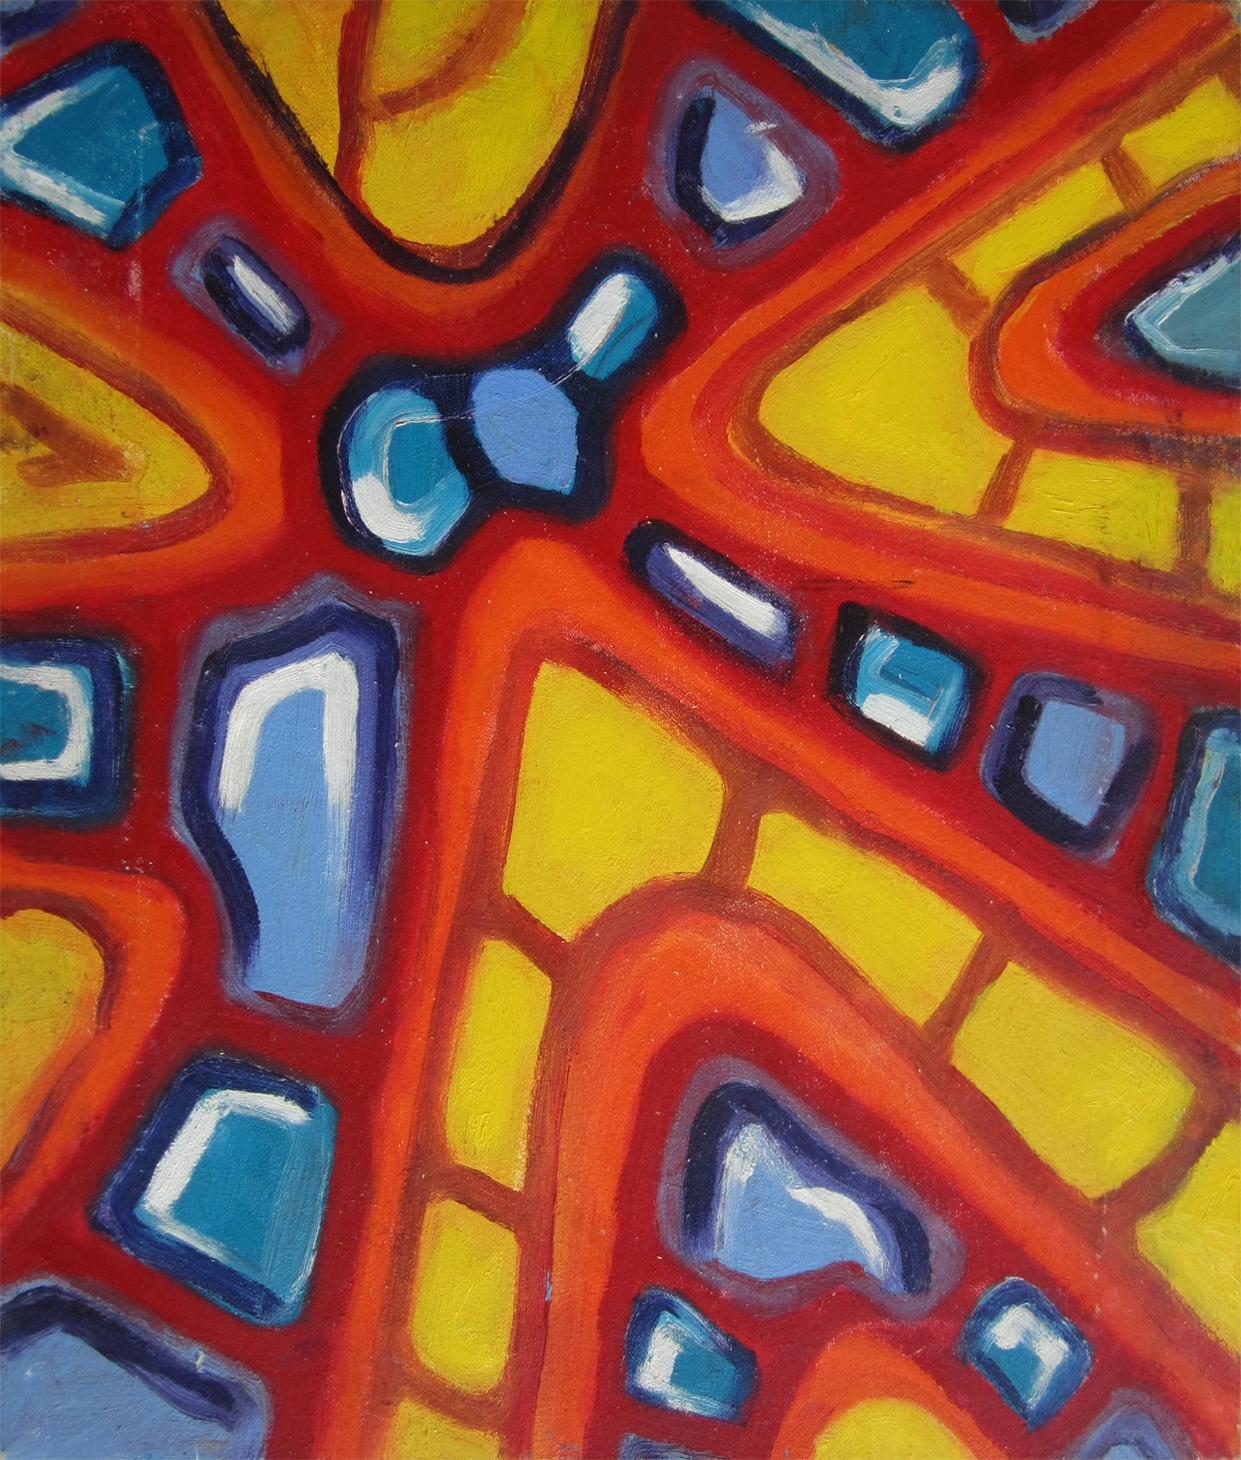 KLEINE ÖL ABSTRAKTE / SMALL OIL ABSTRACTS